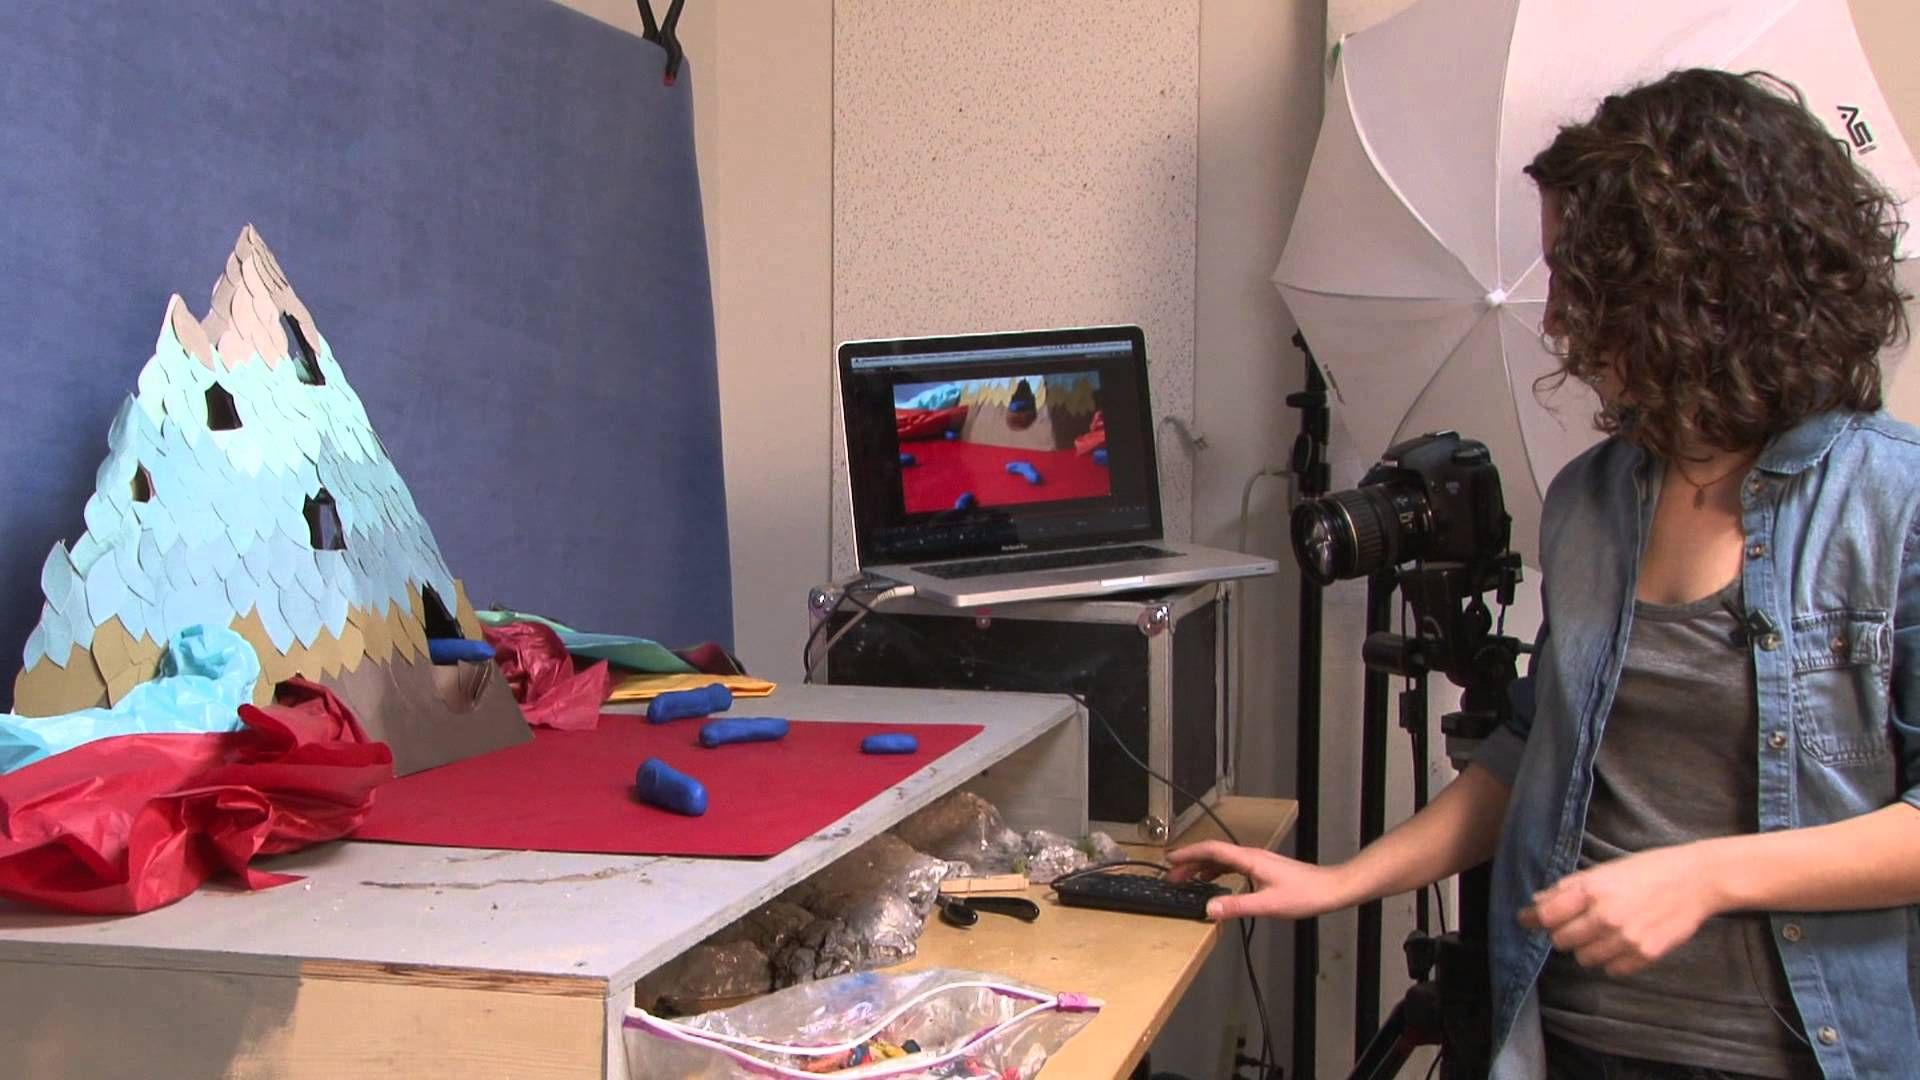 Artist and animator Kirsten Lepore demonstrates how to